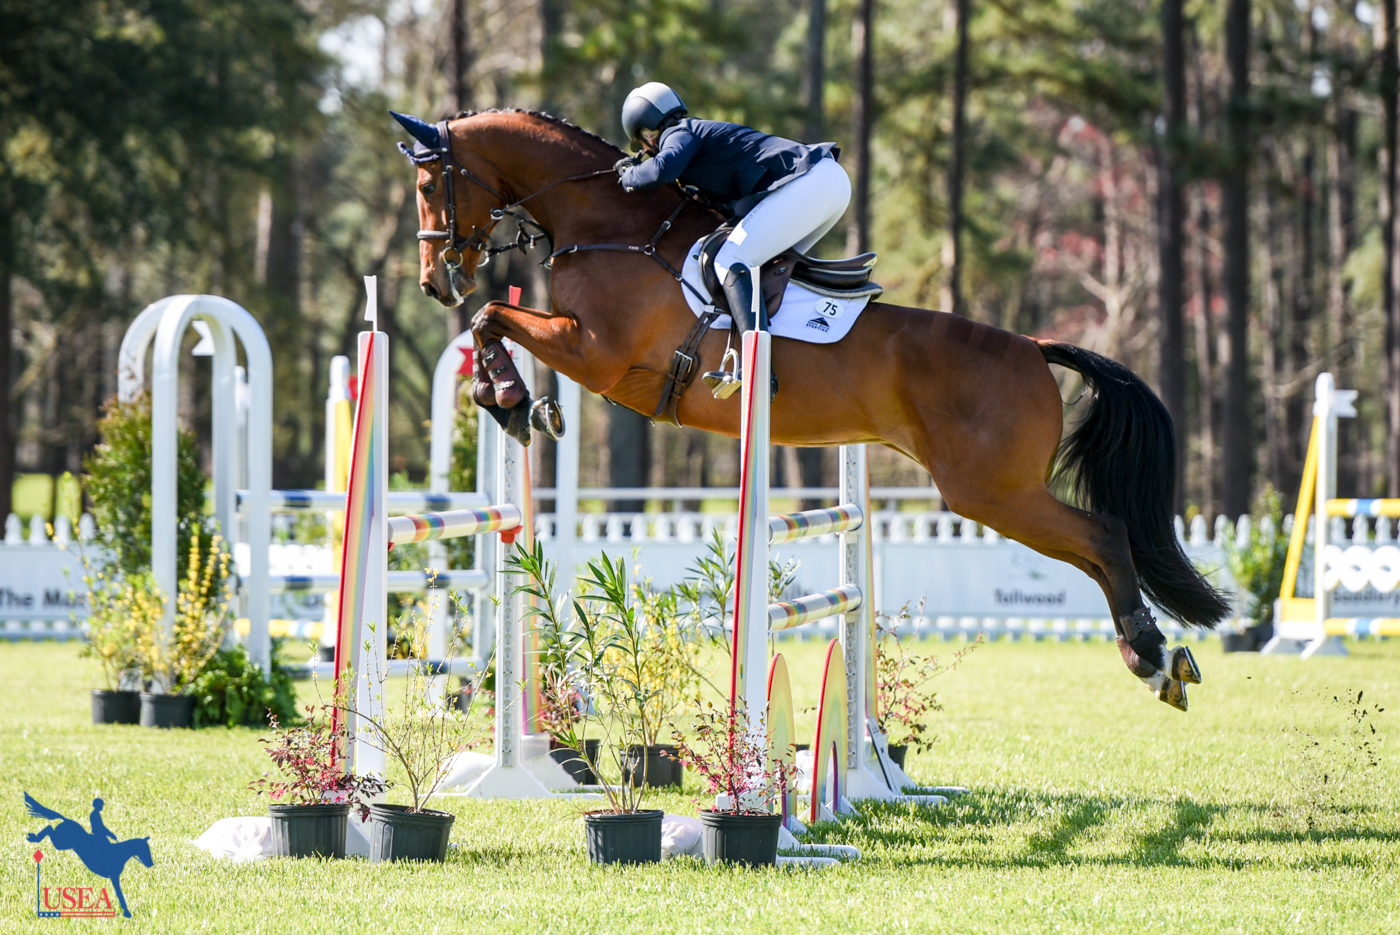 3* - 8th - Sinead Halpin and Cutty Sark